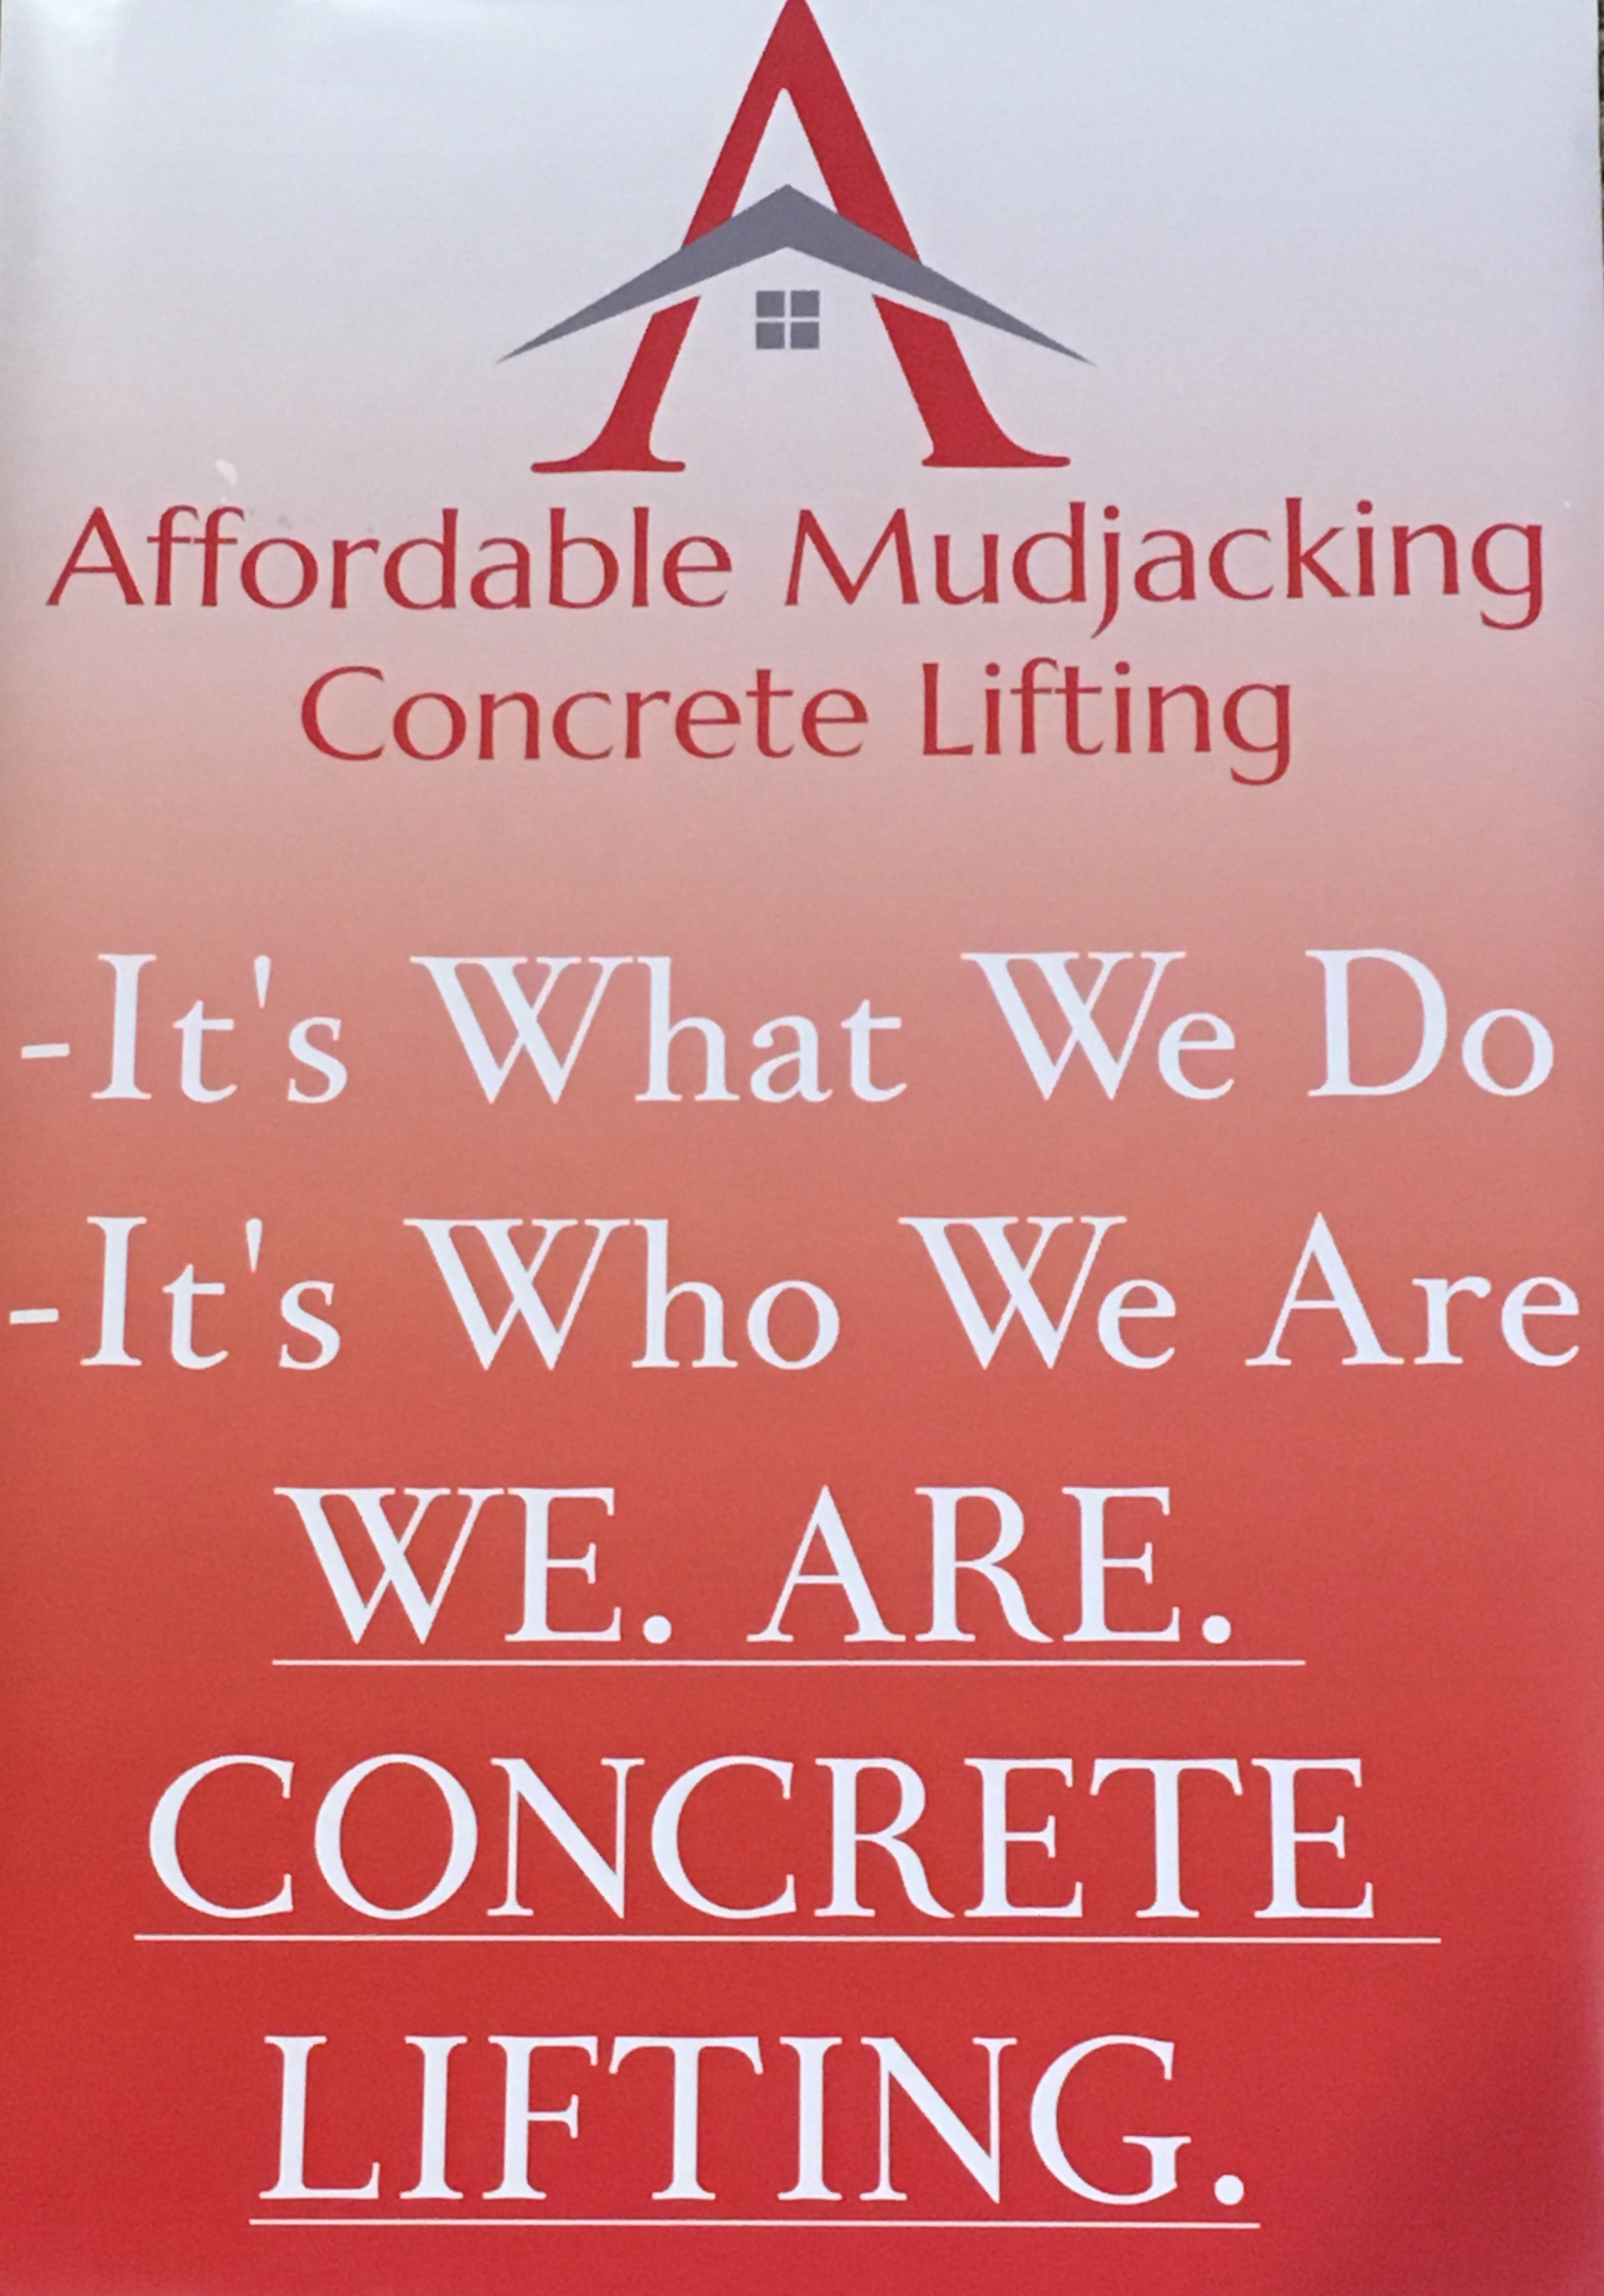 AFFORDABLE MUDJACKING logo